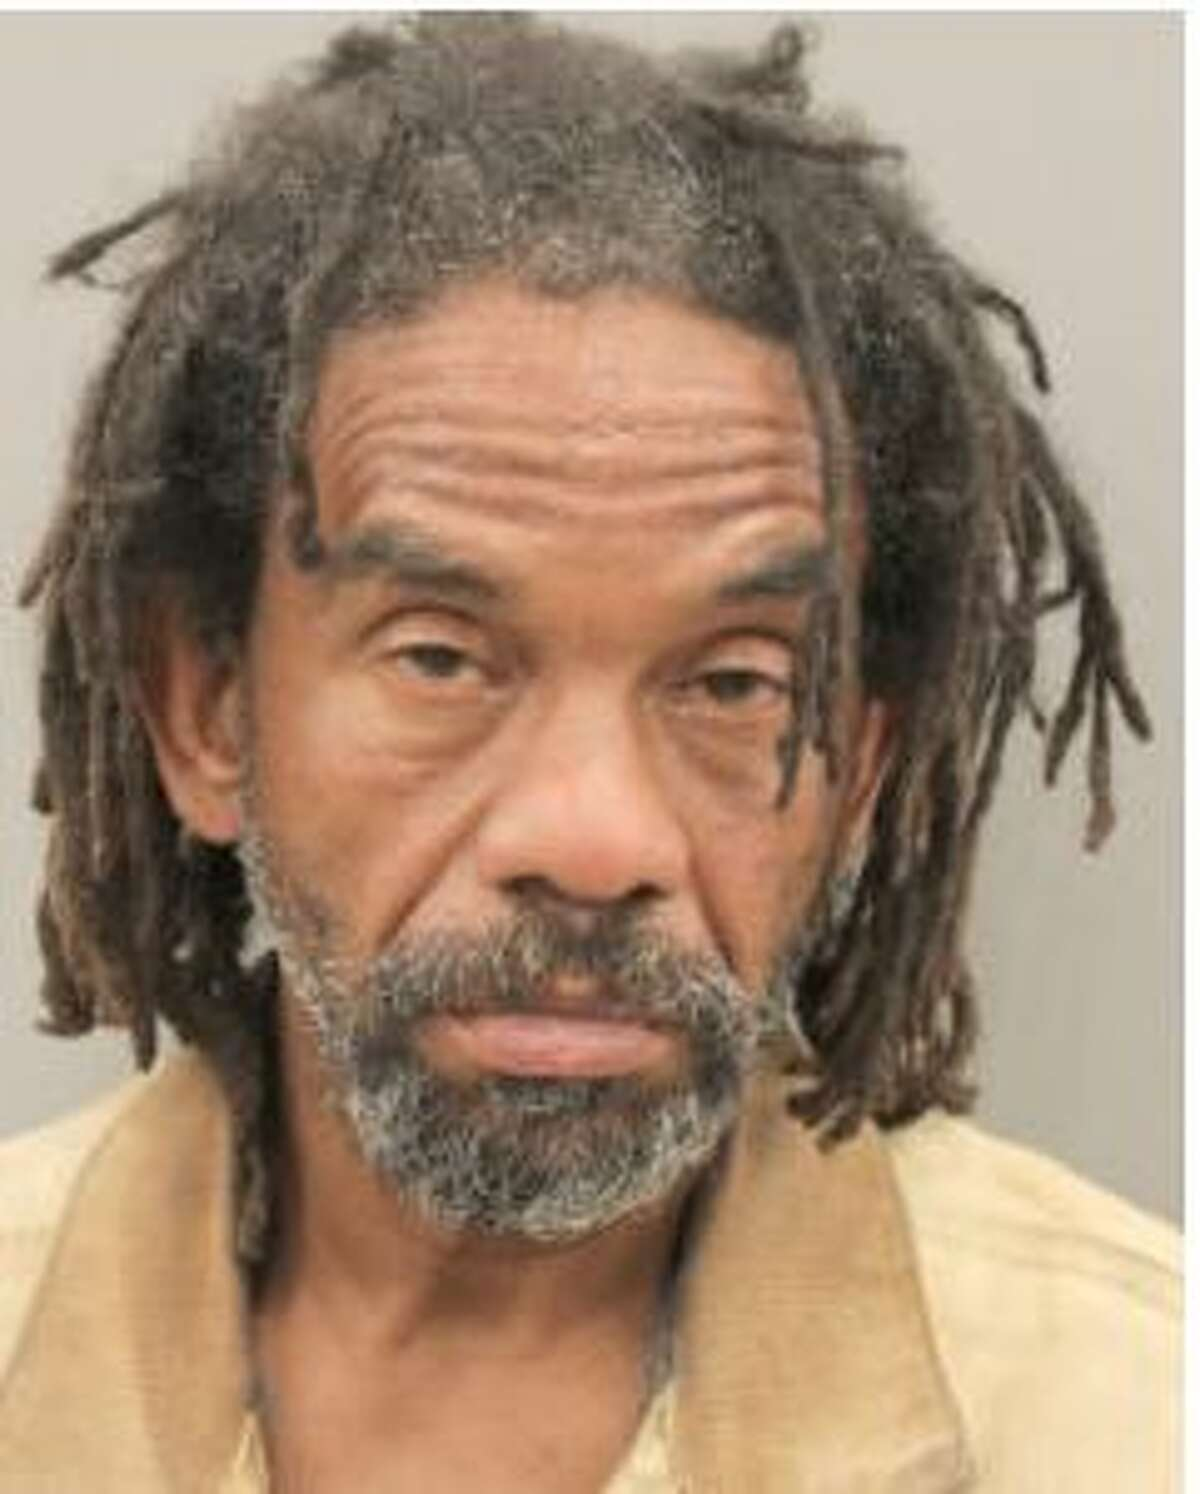 Jerry Nicholas Watts, 49, was charged with murderin the fatal shooting of a woman found dead in a Greater OST/South Union street, according to the Houston Police Department.